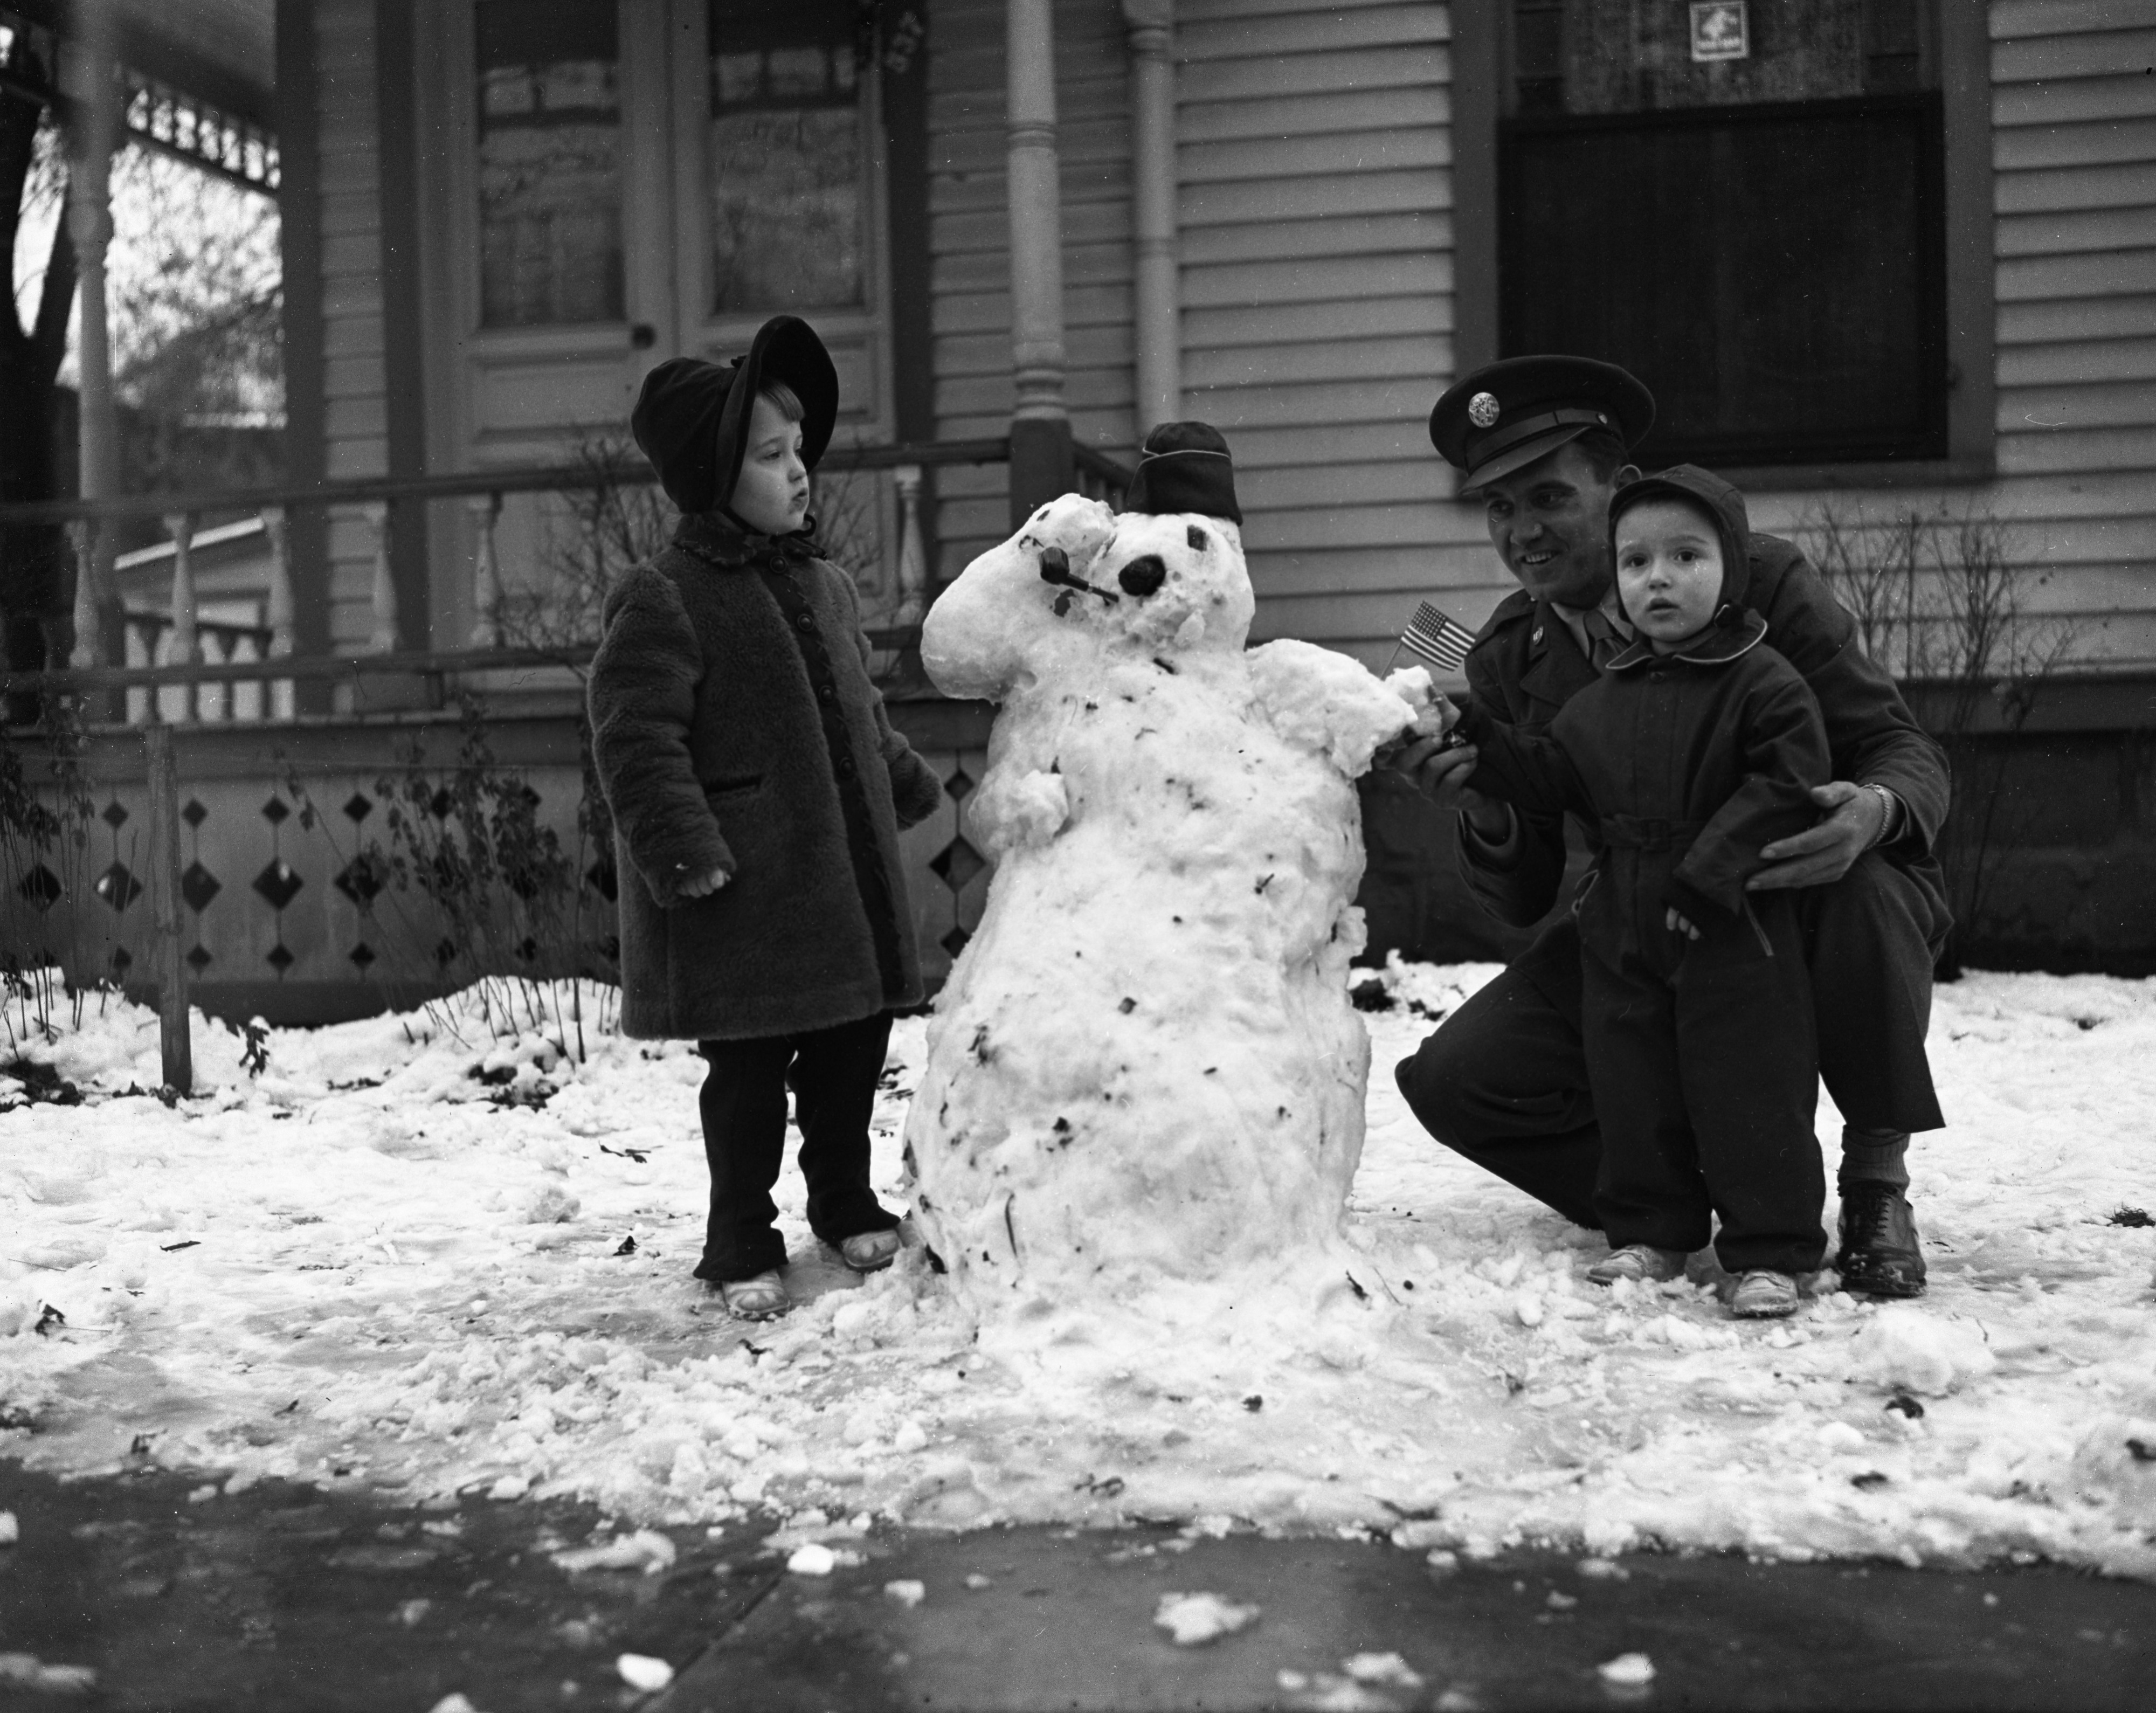 Johnny & Marcia Ann Flis, Together With Their Uncle Joe Yanitsky, Build A Snowman For V-Mail, February 1944 image